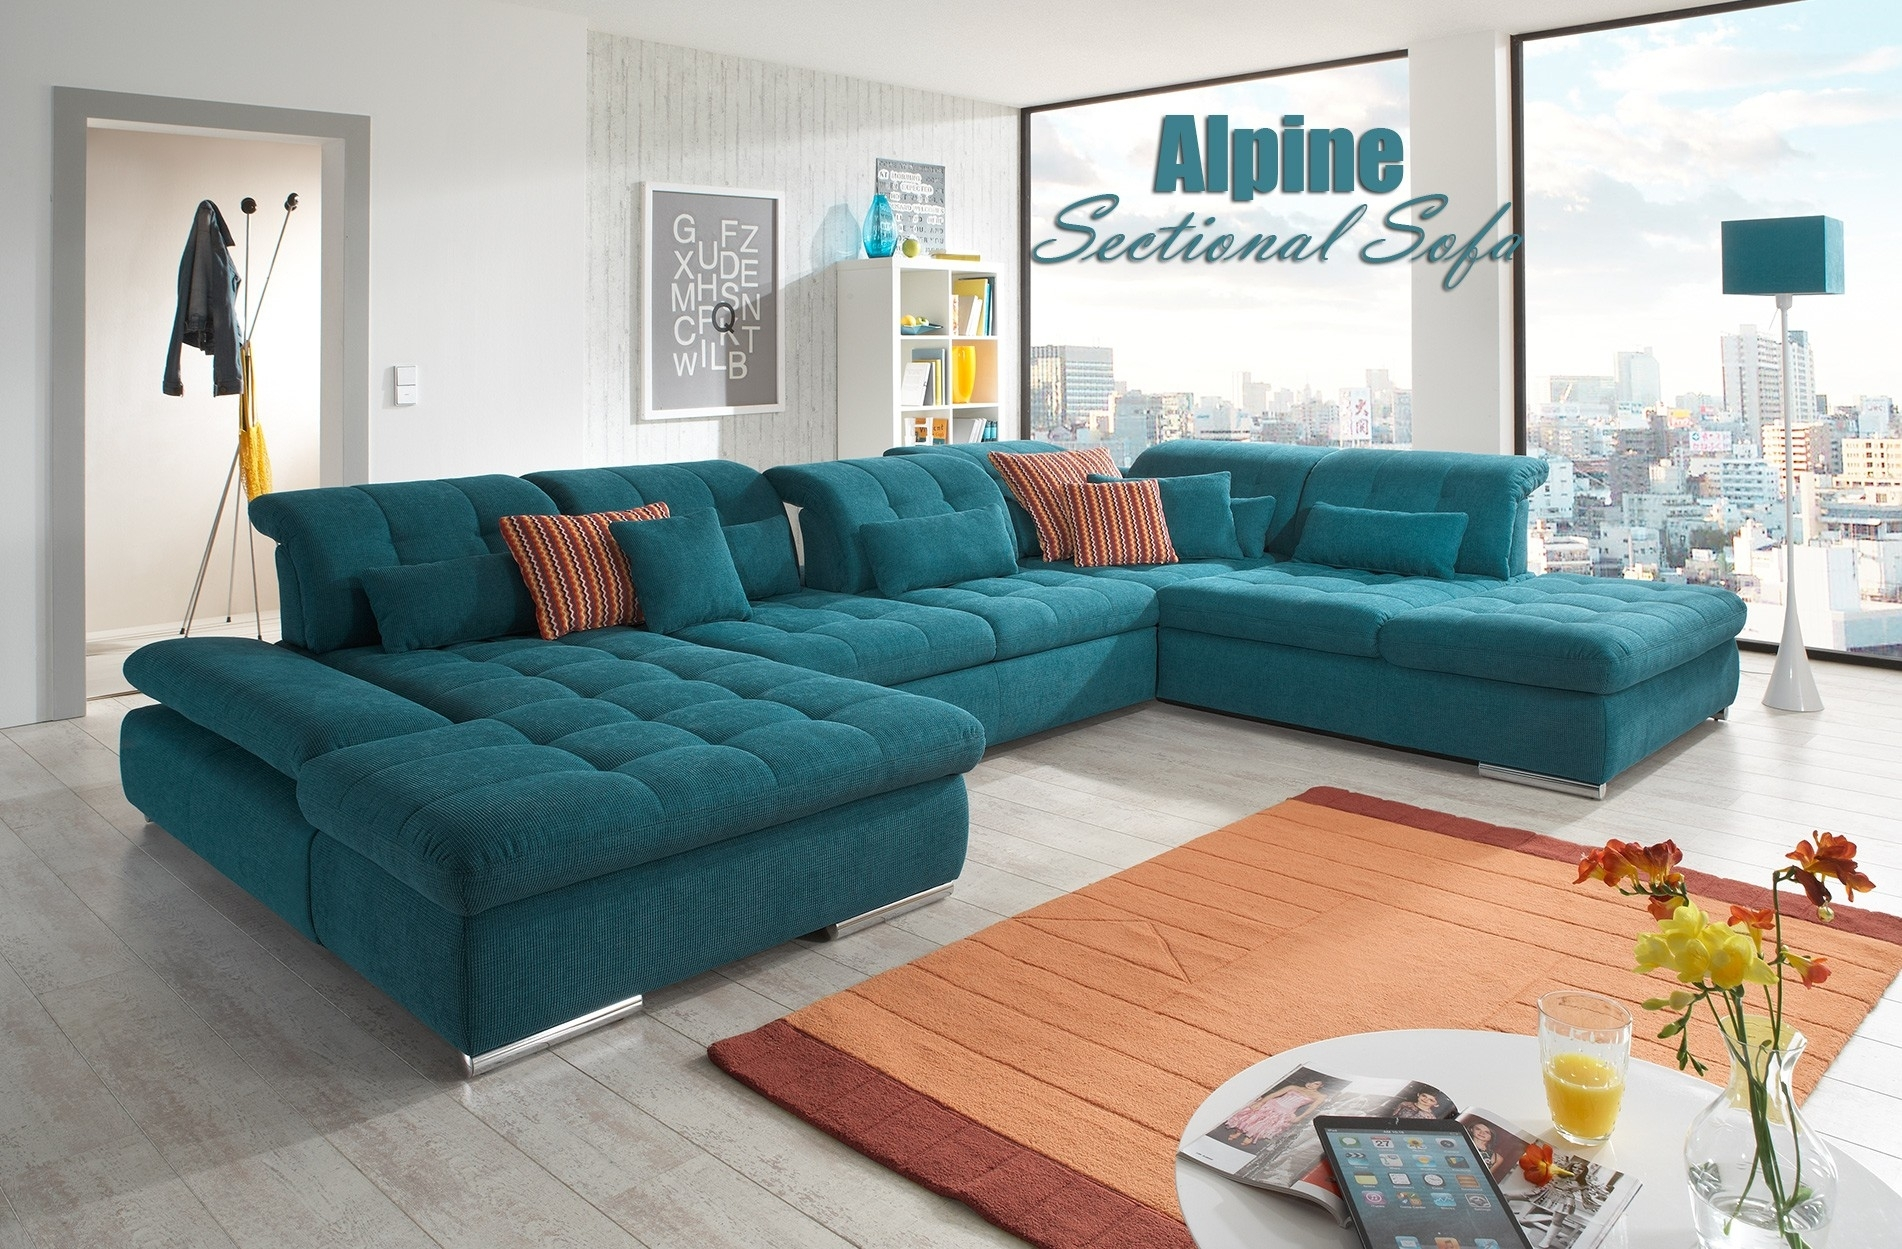 Alpine Sectional Sofa In Green Fabric Throughout Green Sectional Sofas (View 8 of 10)